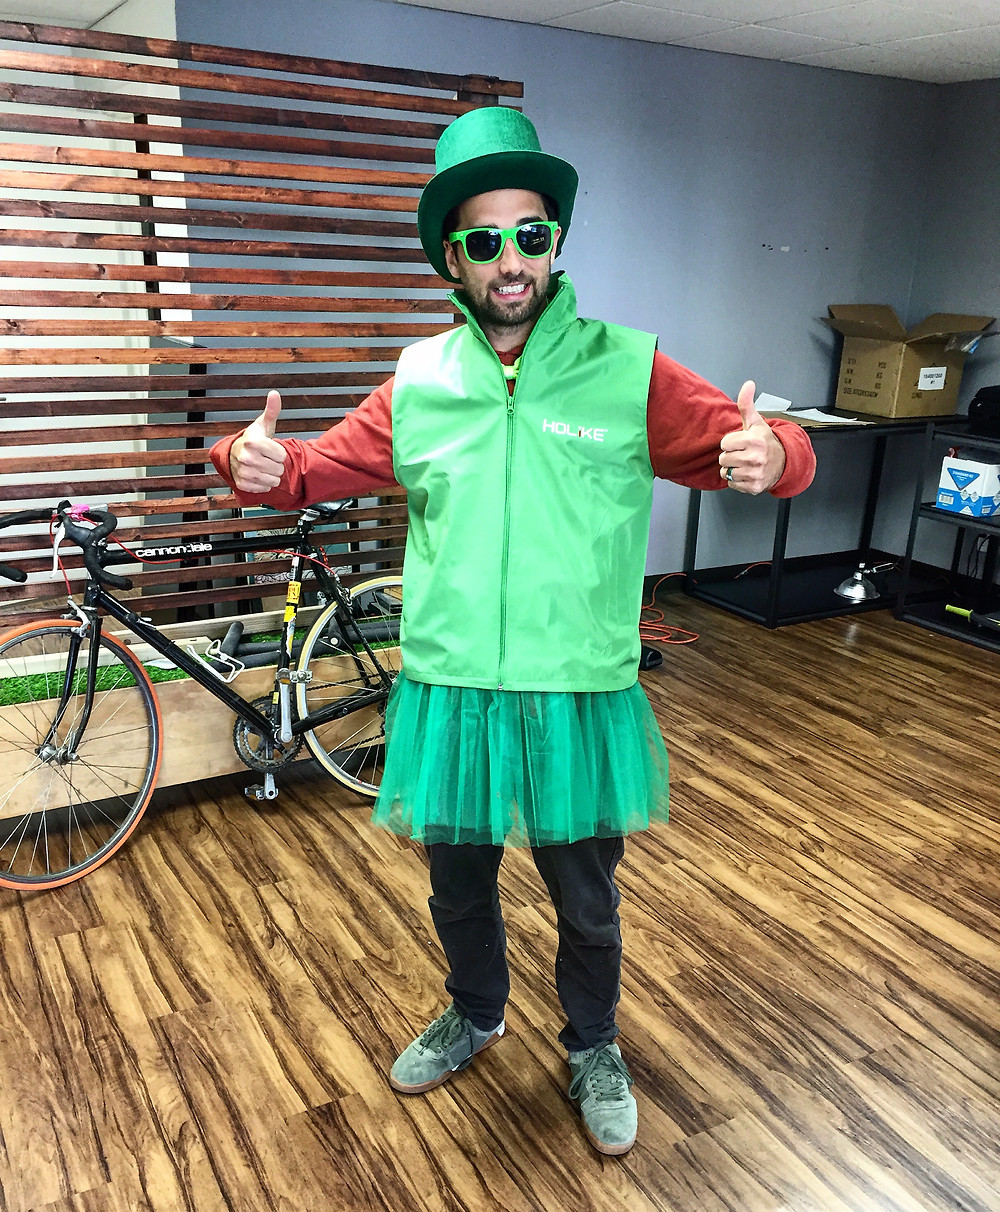 Jesse in Full St. Paddy's Day Attire